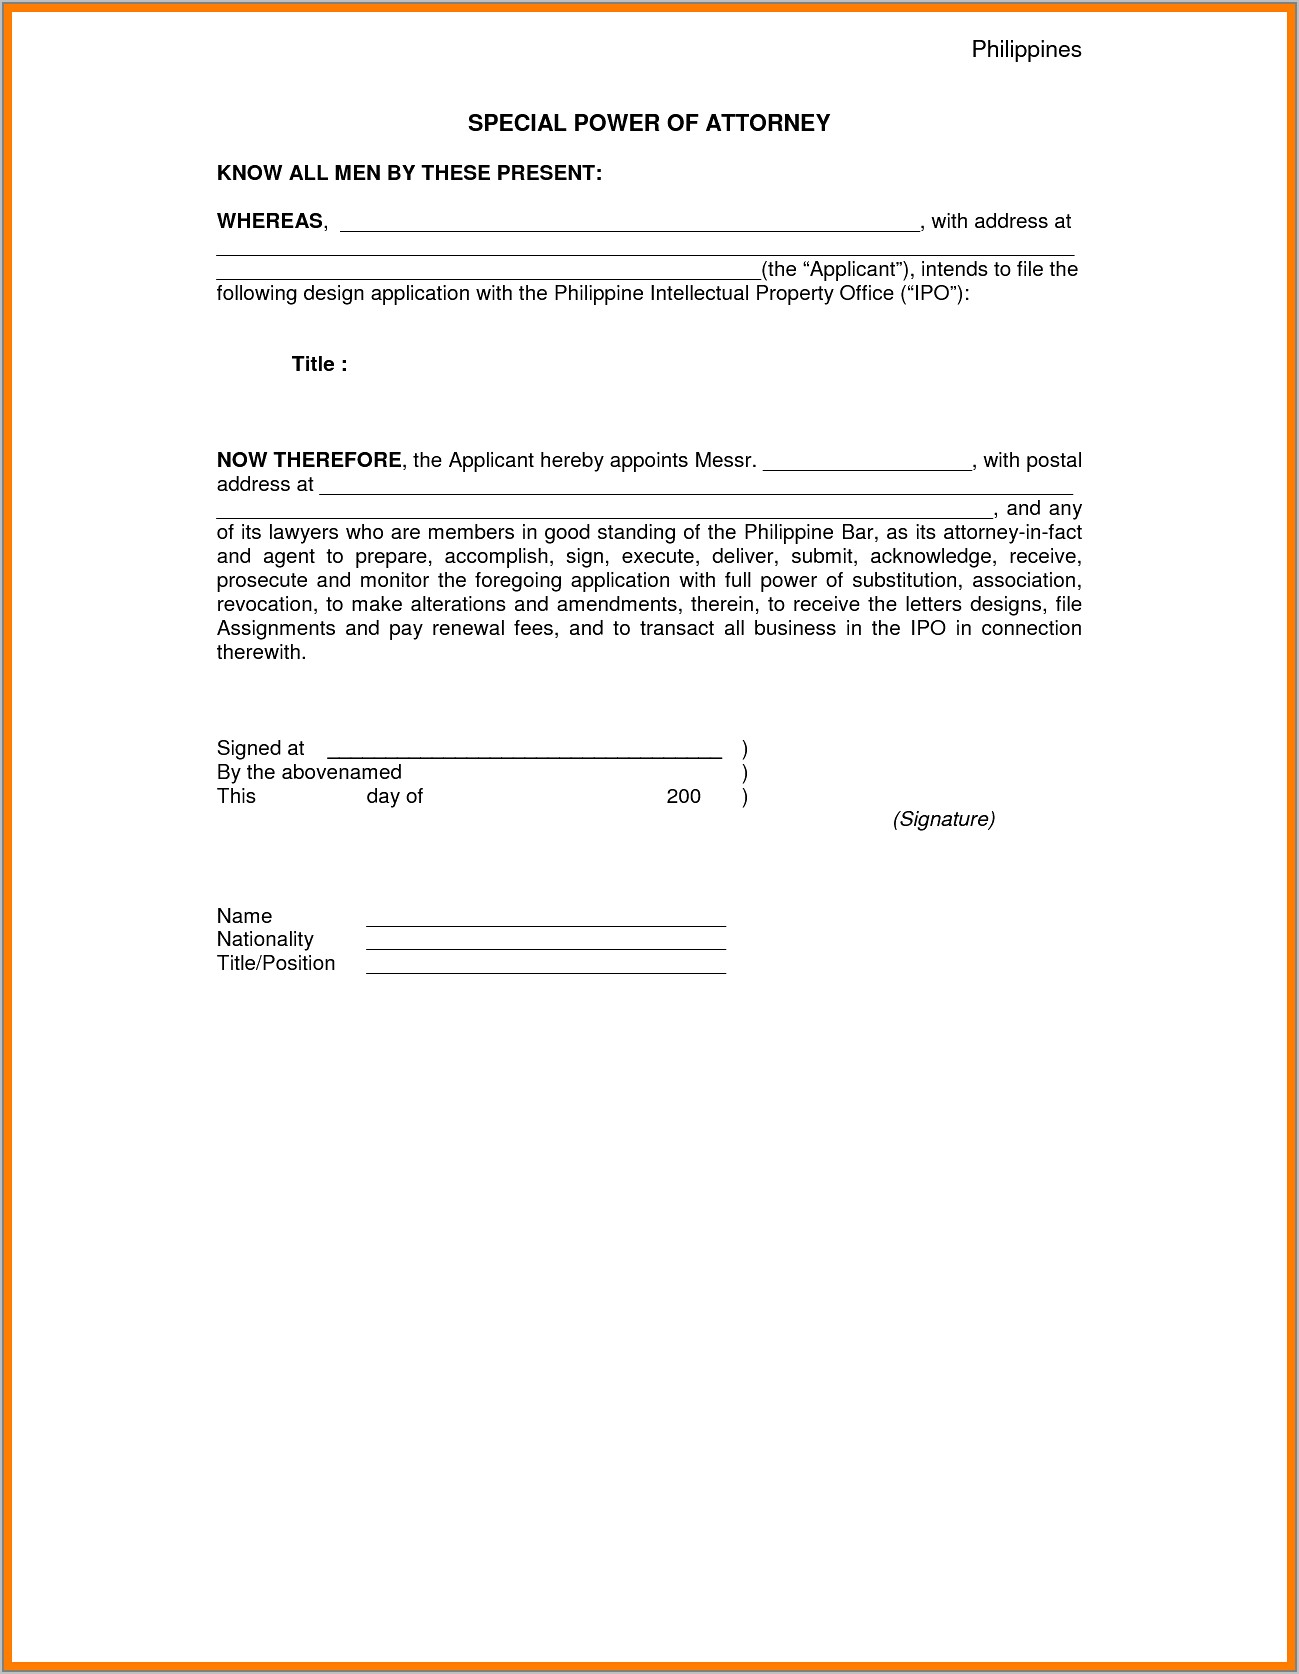 Sample Of Special Power Of Attorney Letter